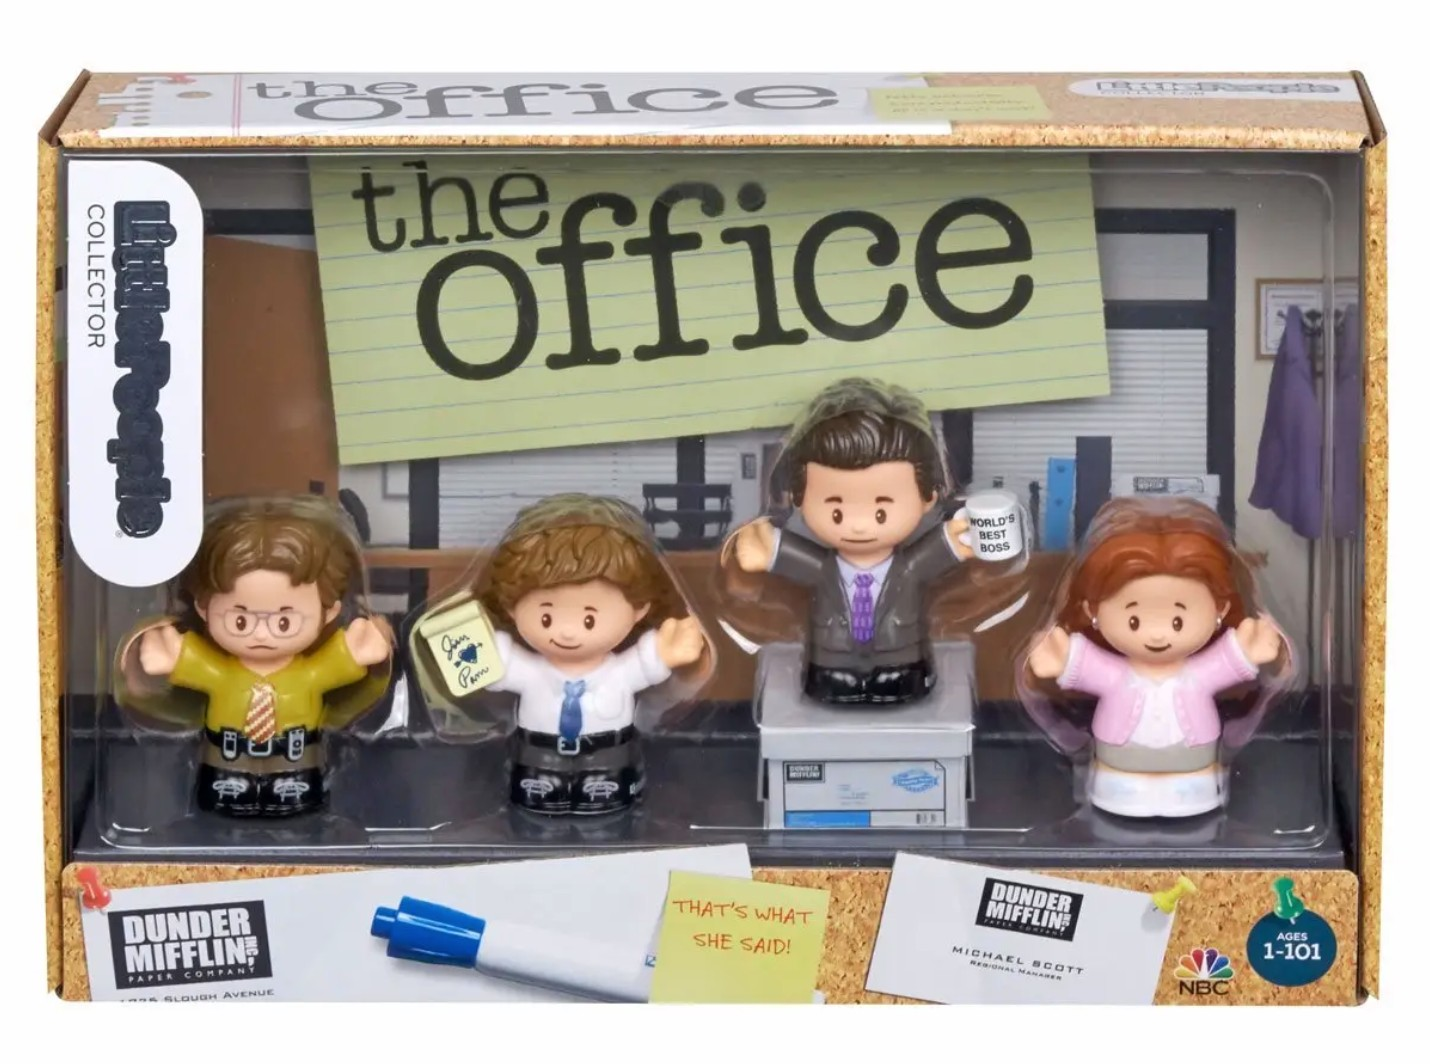 The Office Gets Super Cute Fisher Price Toy Set Consequence Of Sound